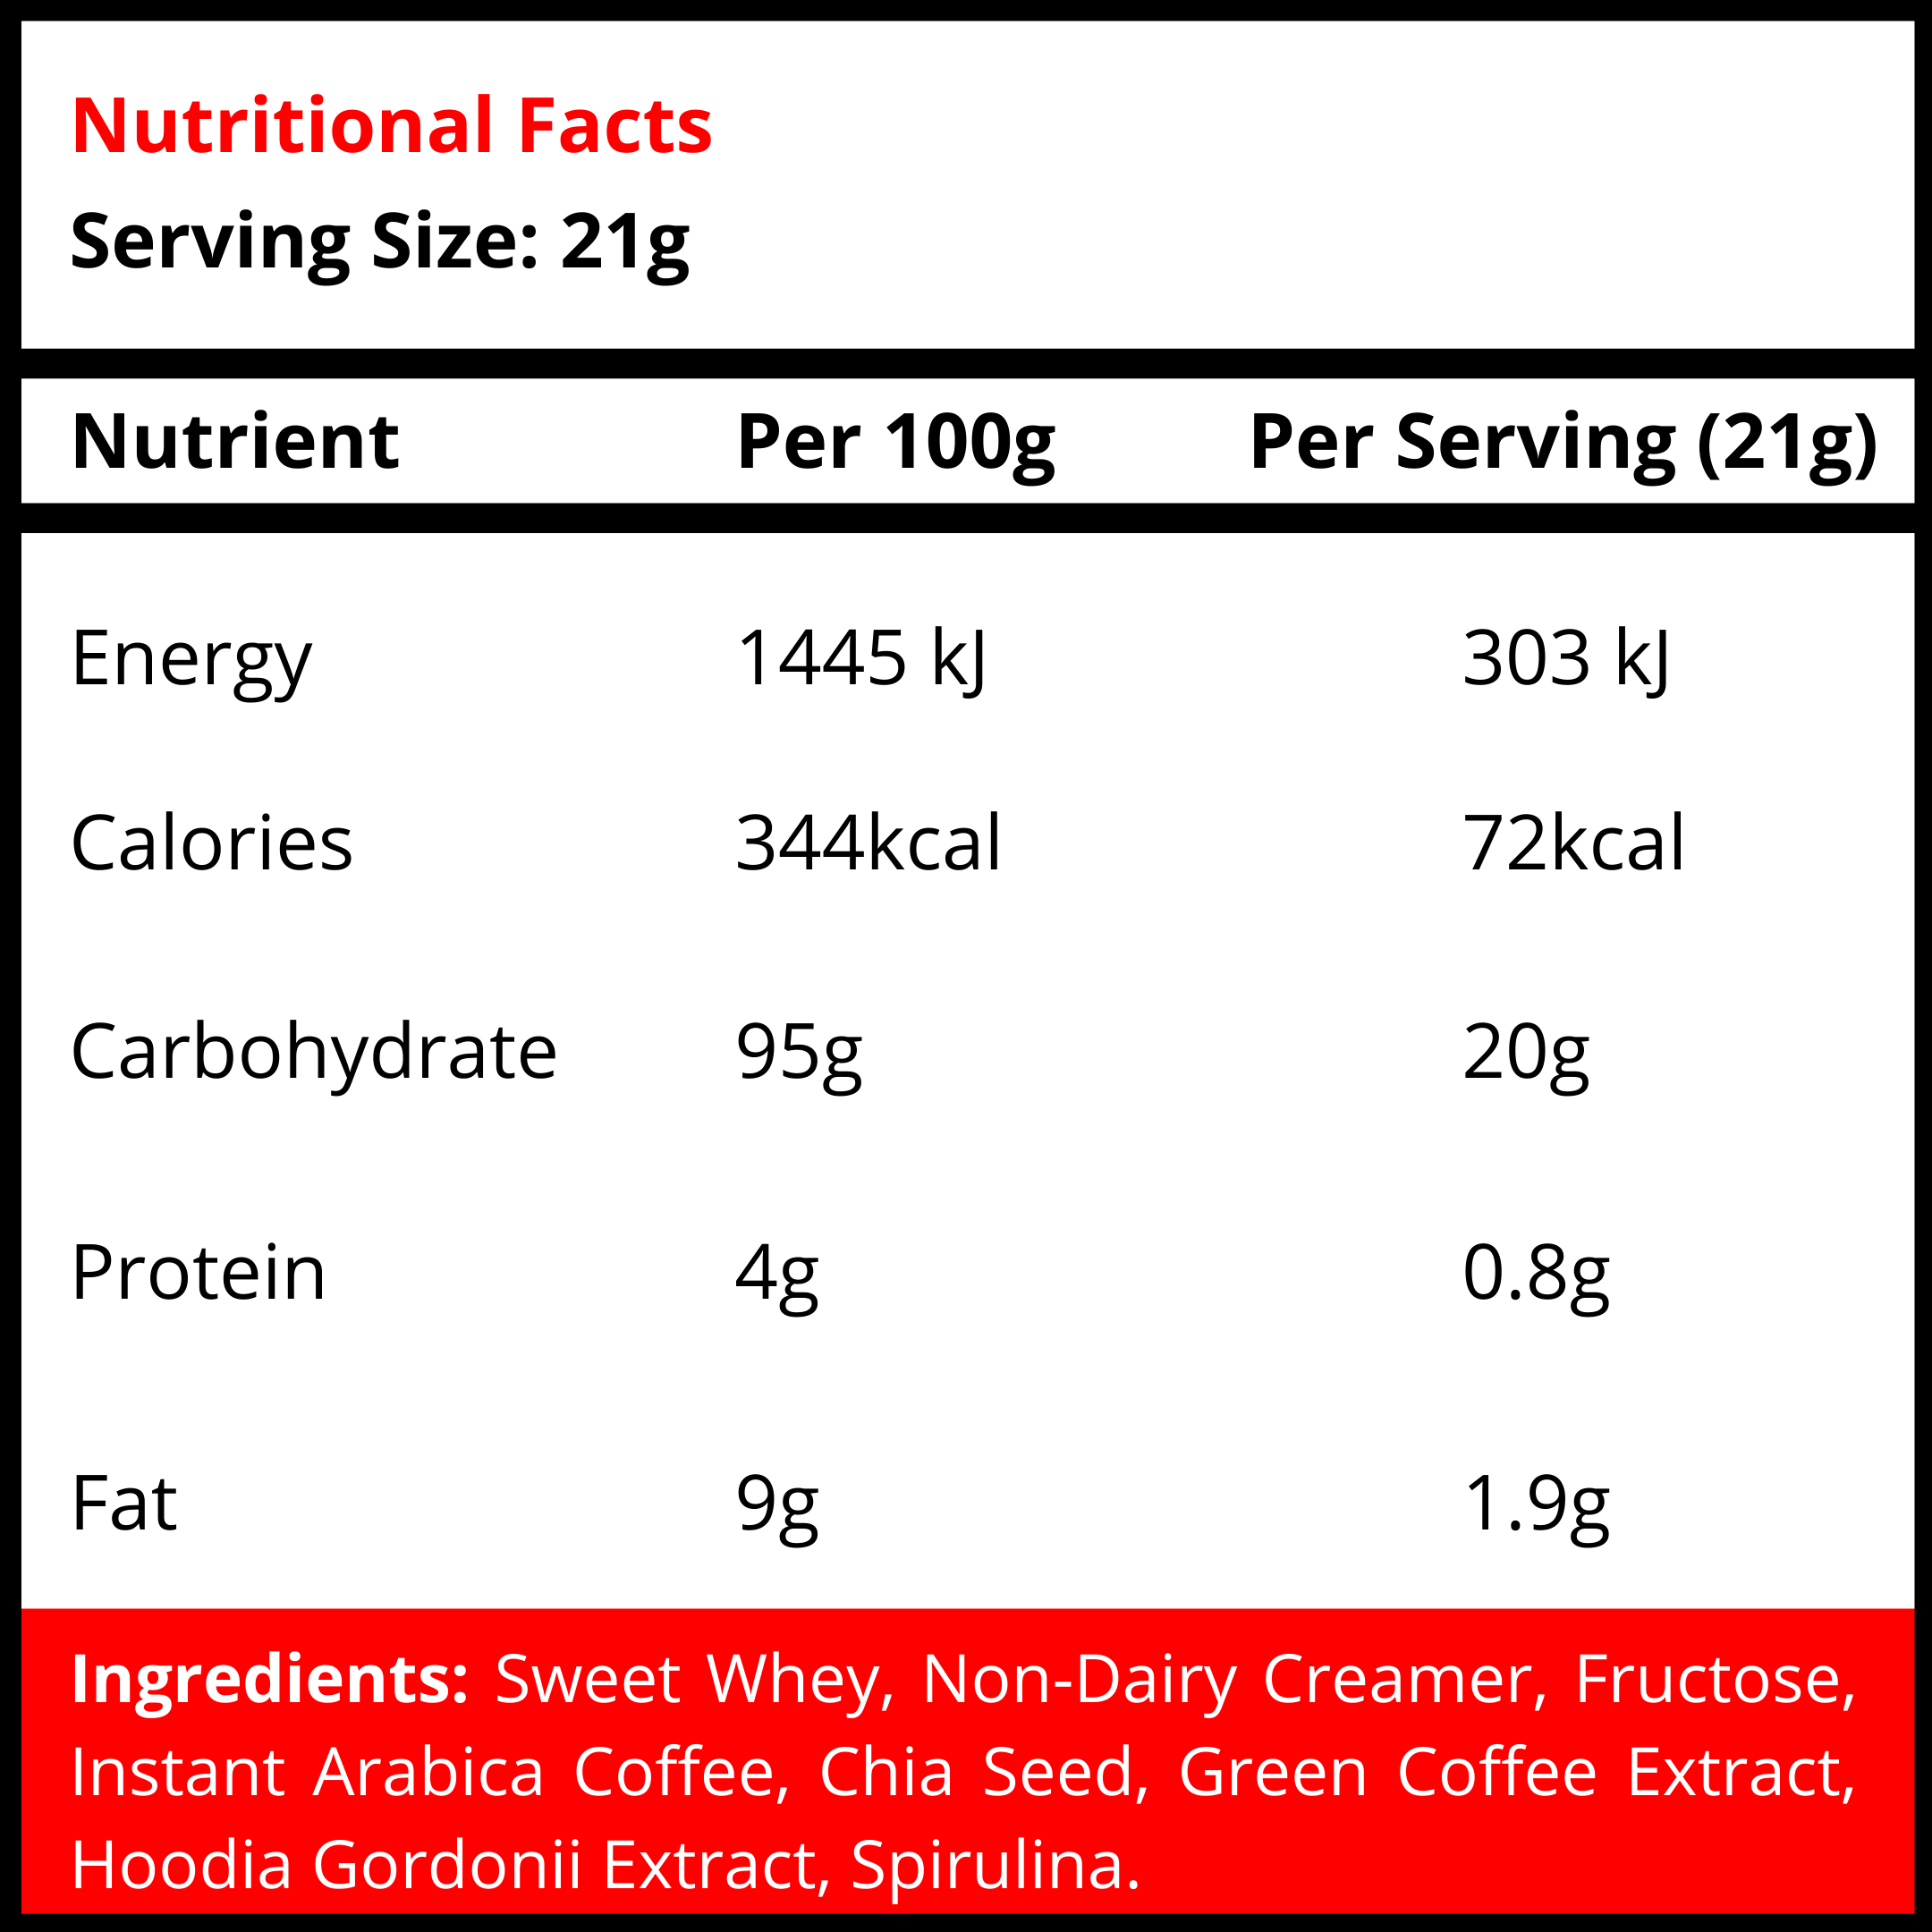 JM Advance | Nutritional Facts